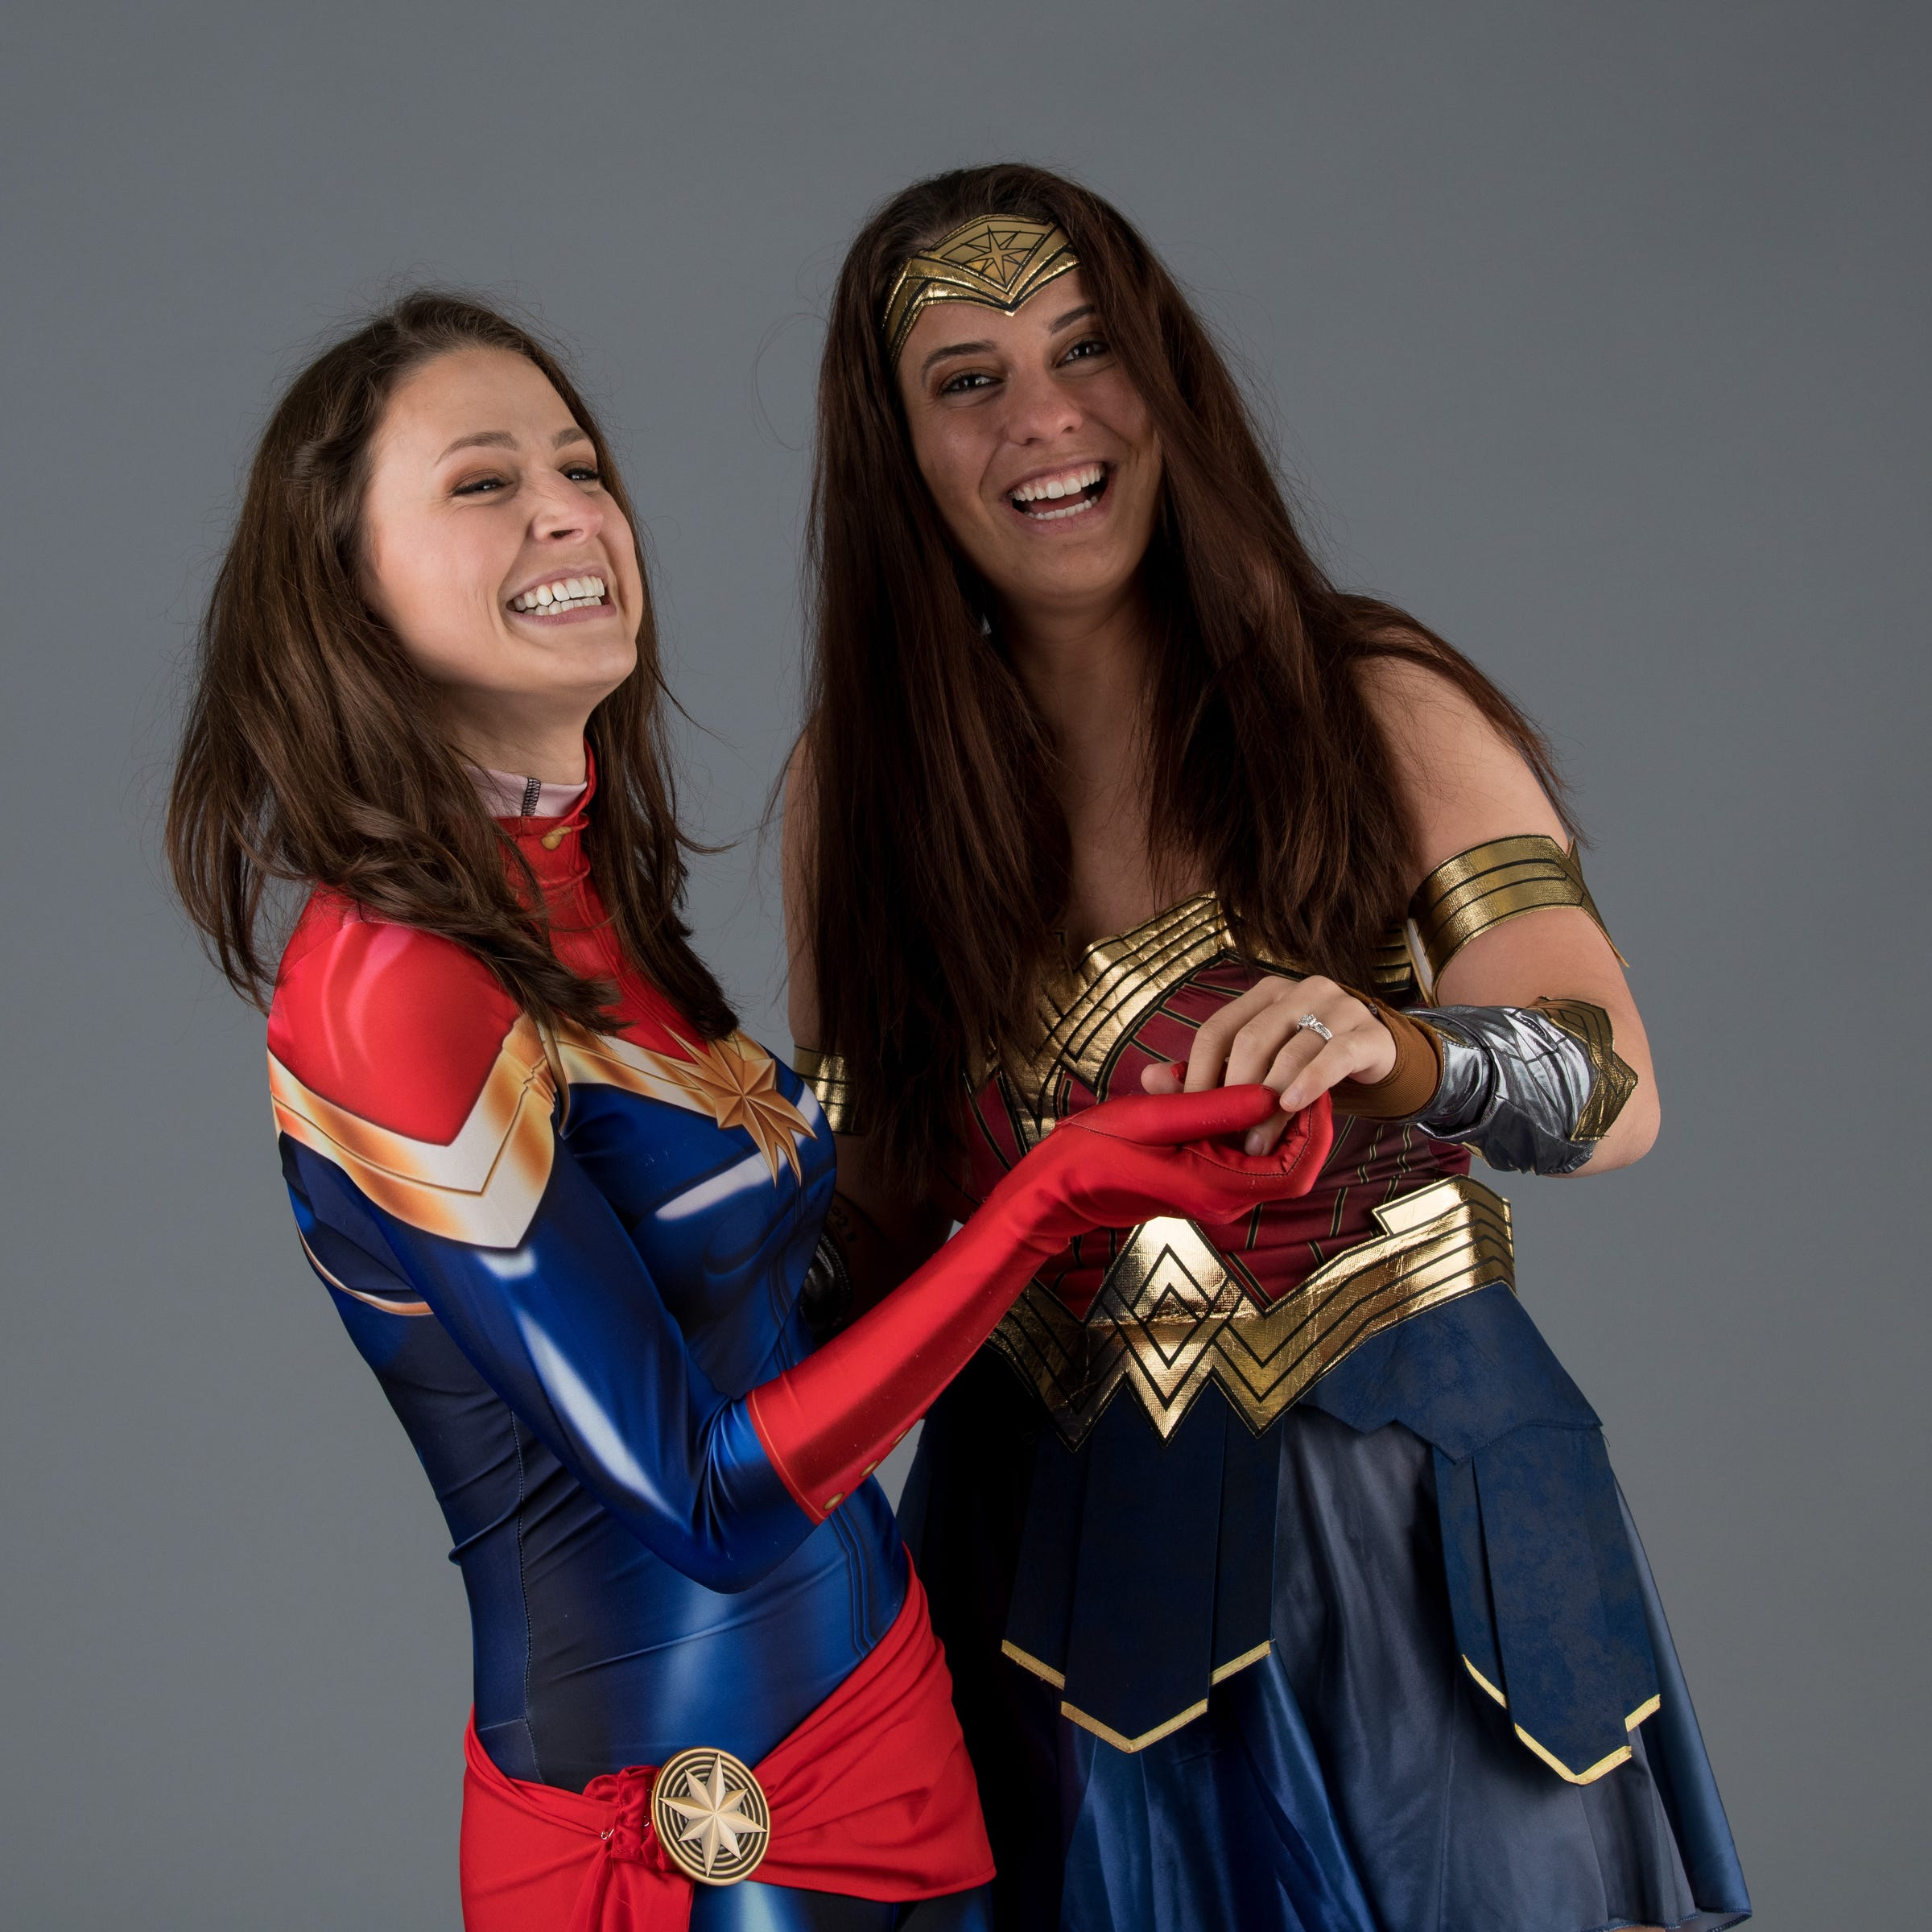 Captain Marvel And Wonder Woman Get Engaged At Motor City Comic Con Shop for captain marvel costume online at target. engaged at motor city comic con